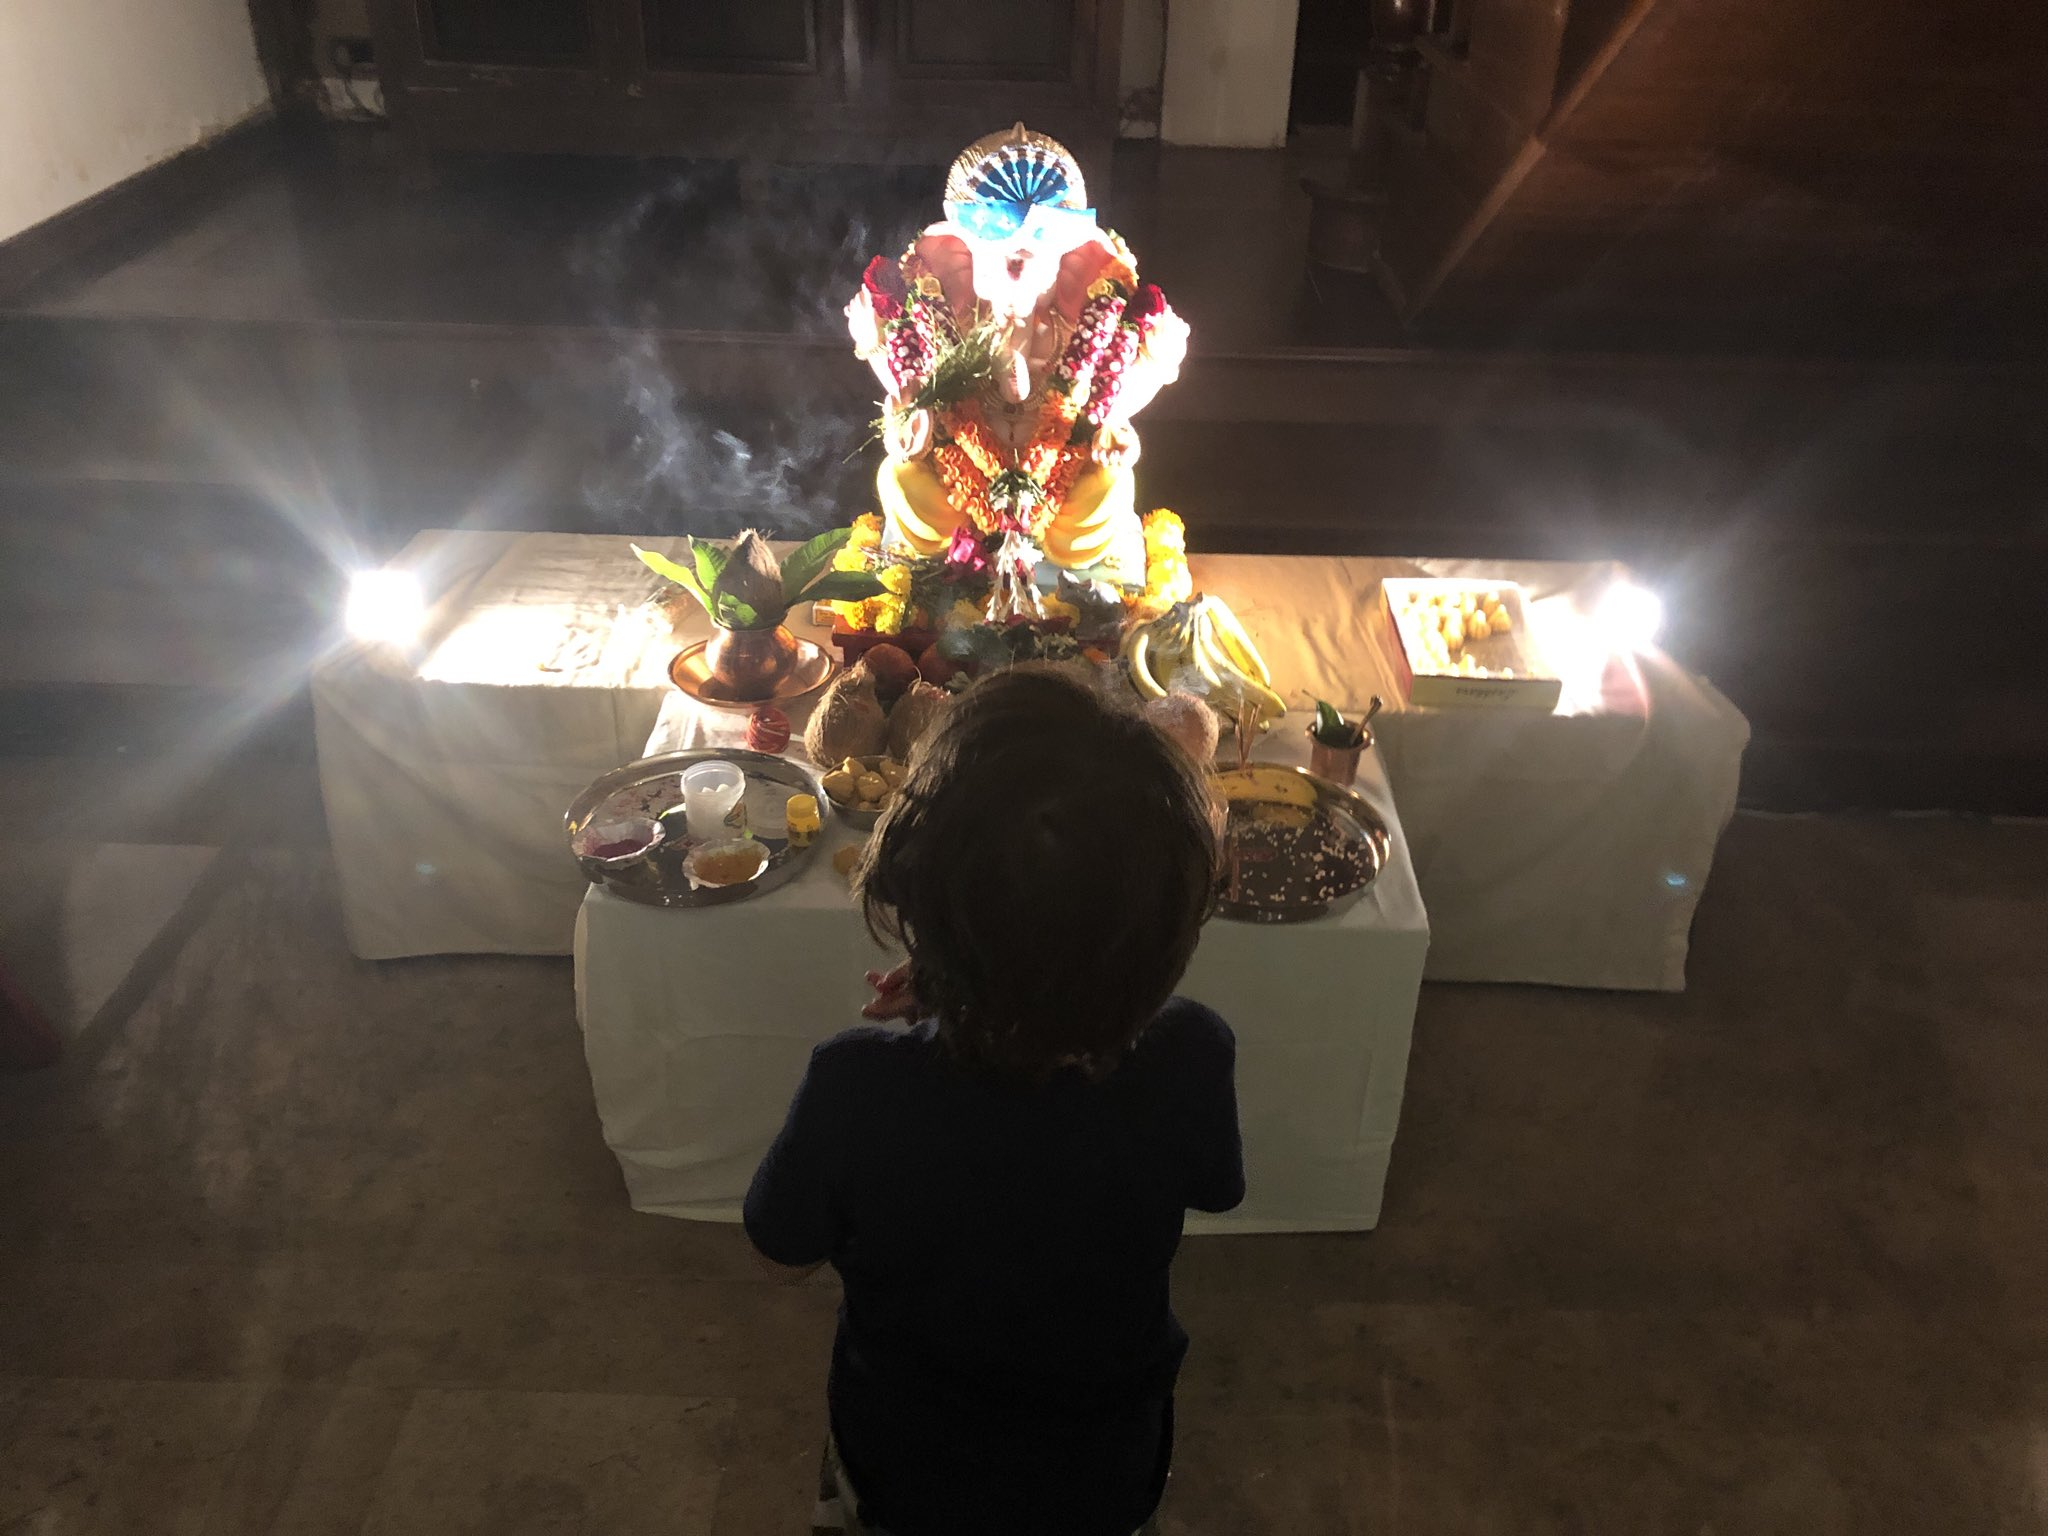 Our Ganpati 'Pappa' is home, as the lil one calls him. https://t.co/G7pSAgeQlj